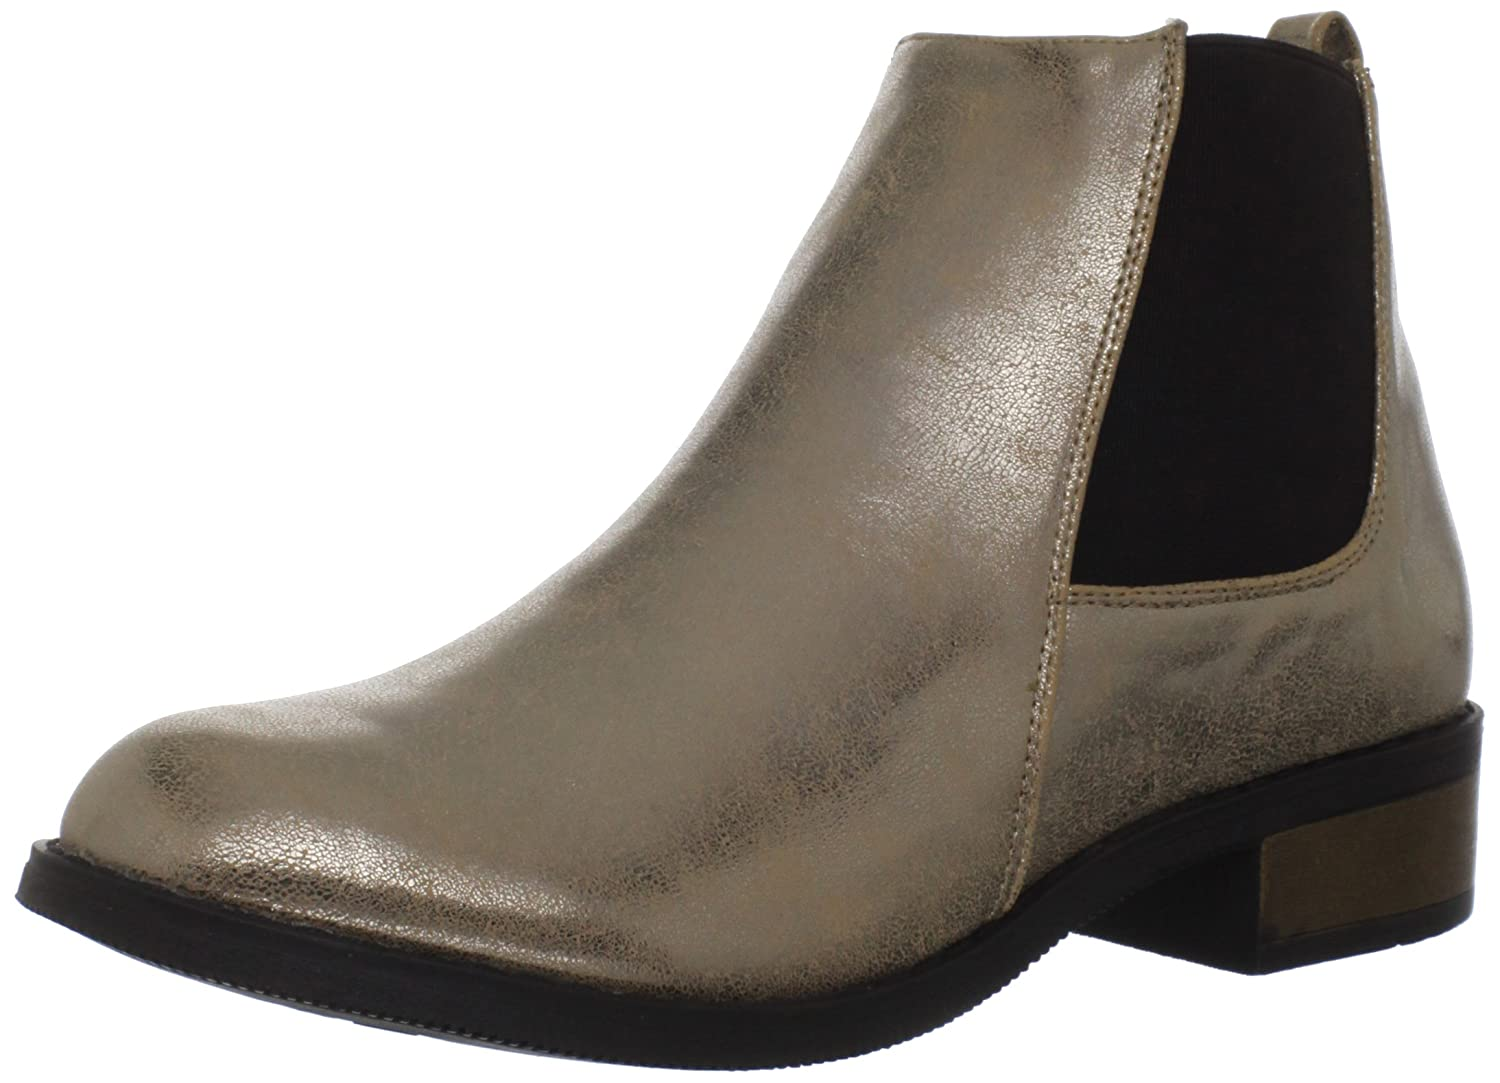 Dirty Laundry by Chinese Laundry Women's Sada Ankle Boot